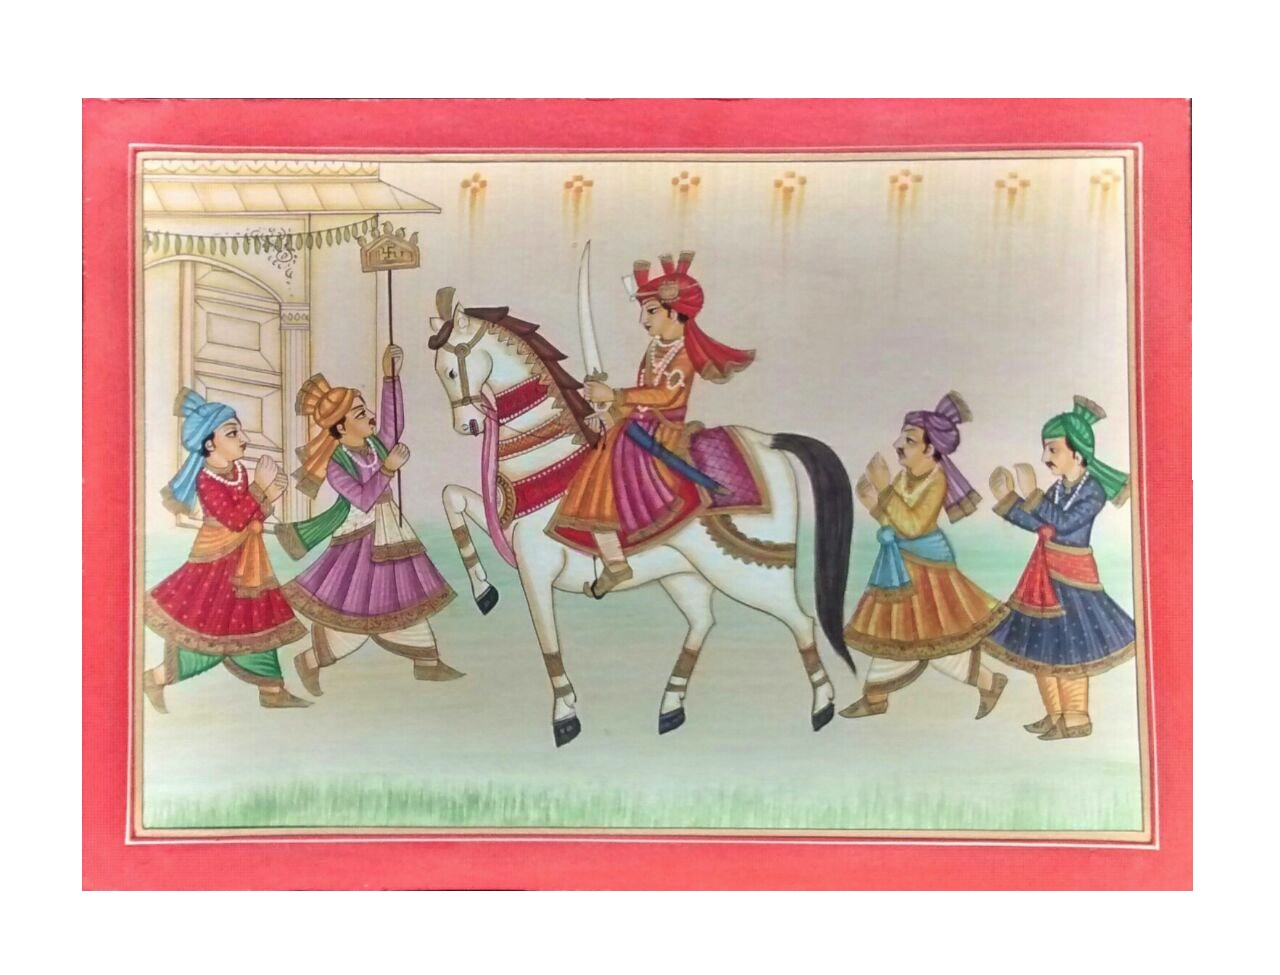 ... diversity and imaginative creativity found in Rajasthani paintings